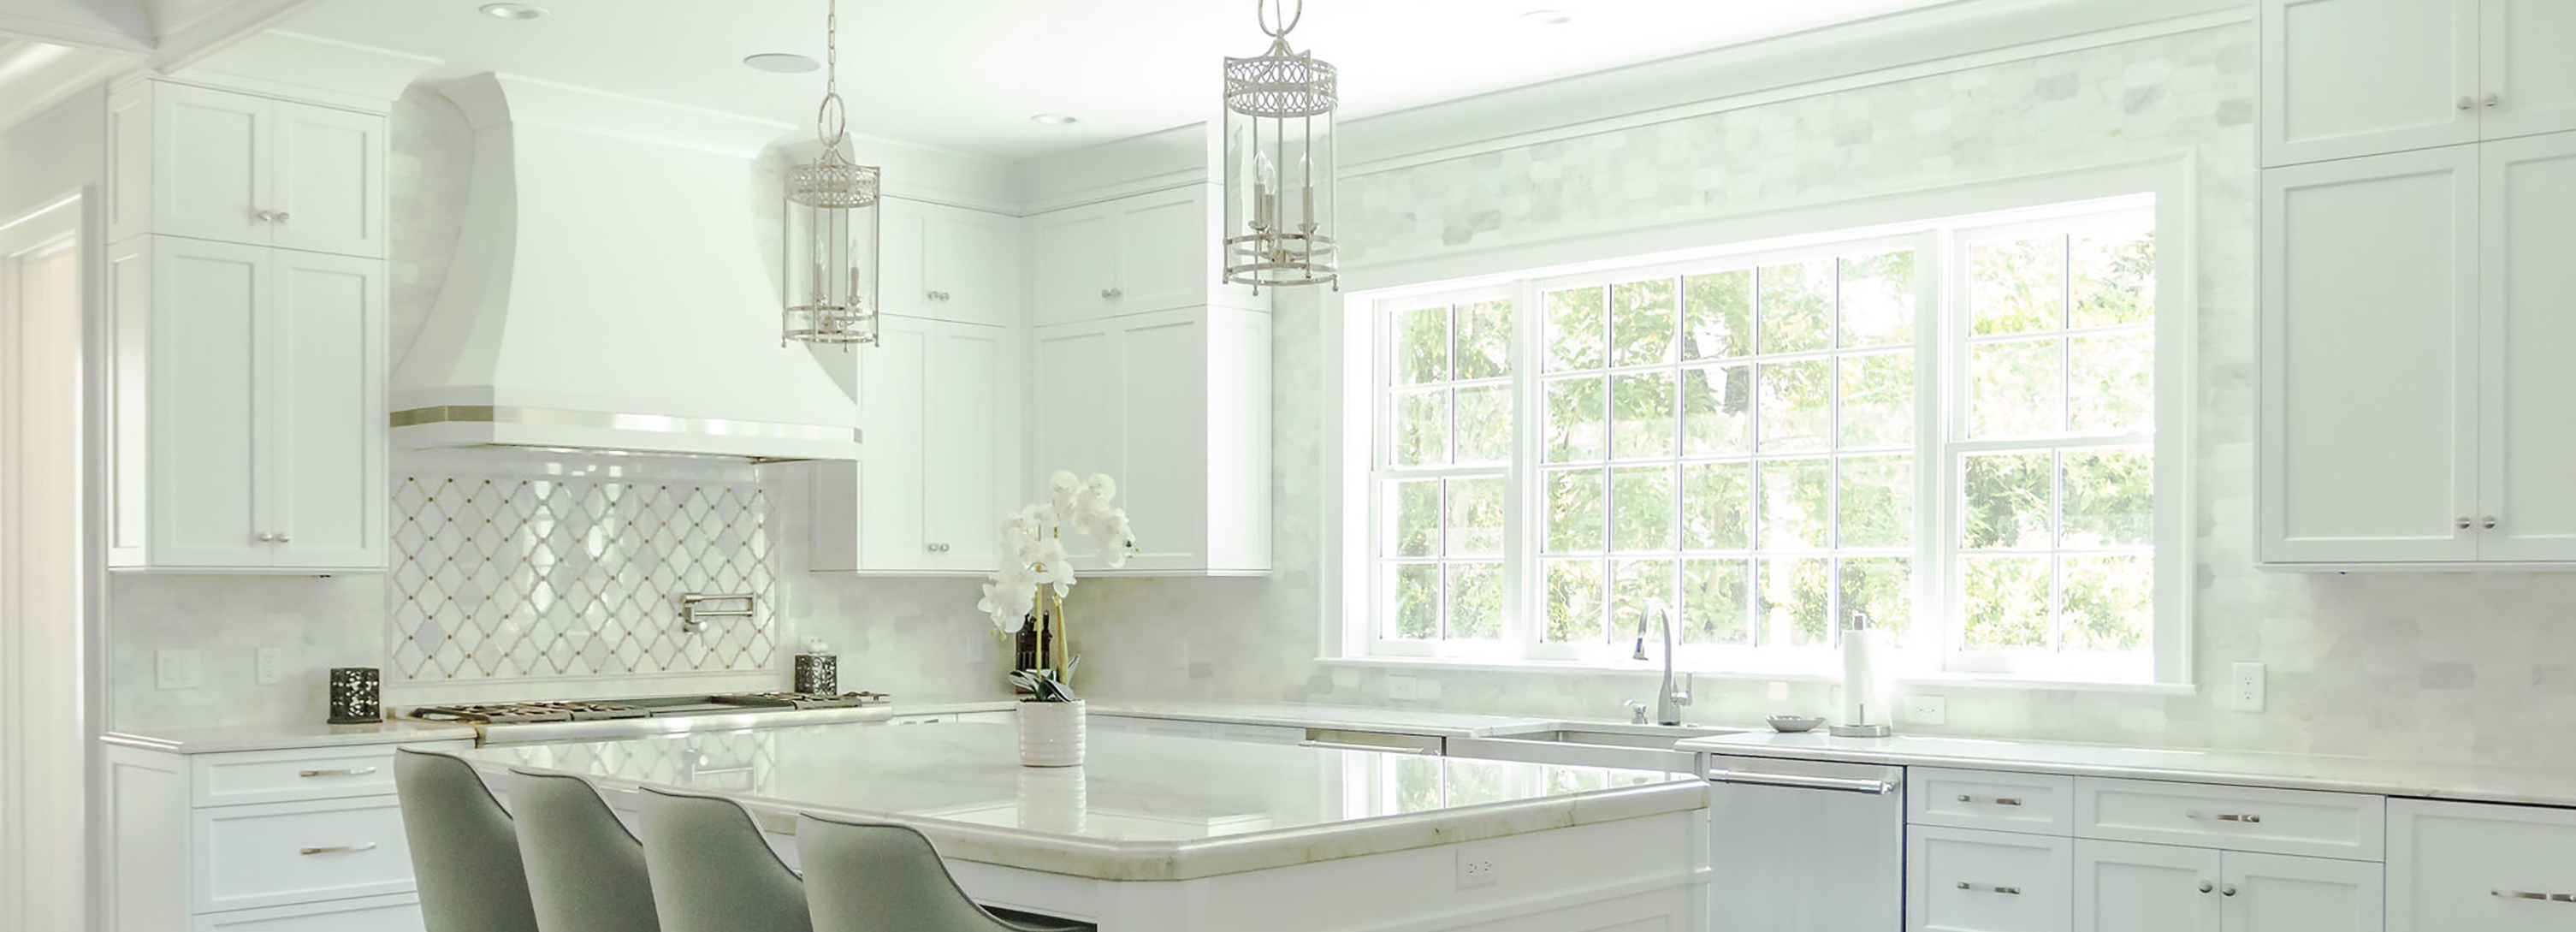 Contact Creative Building Group for Kitchen remodeling service